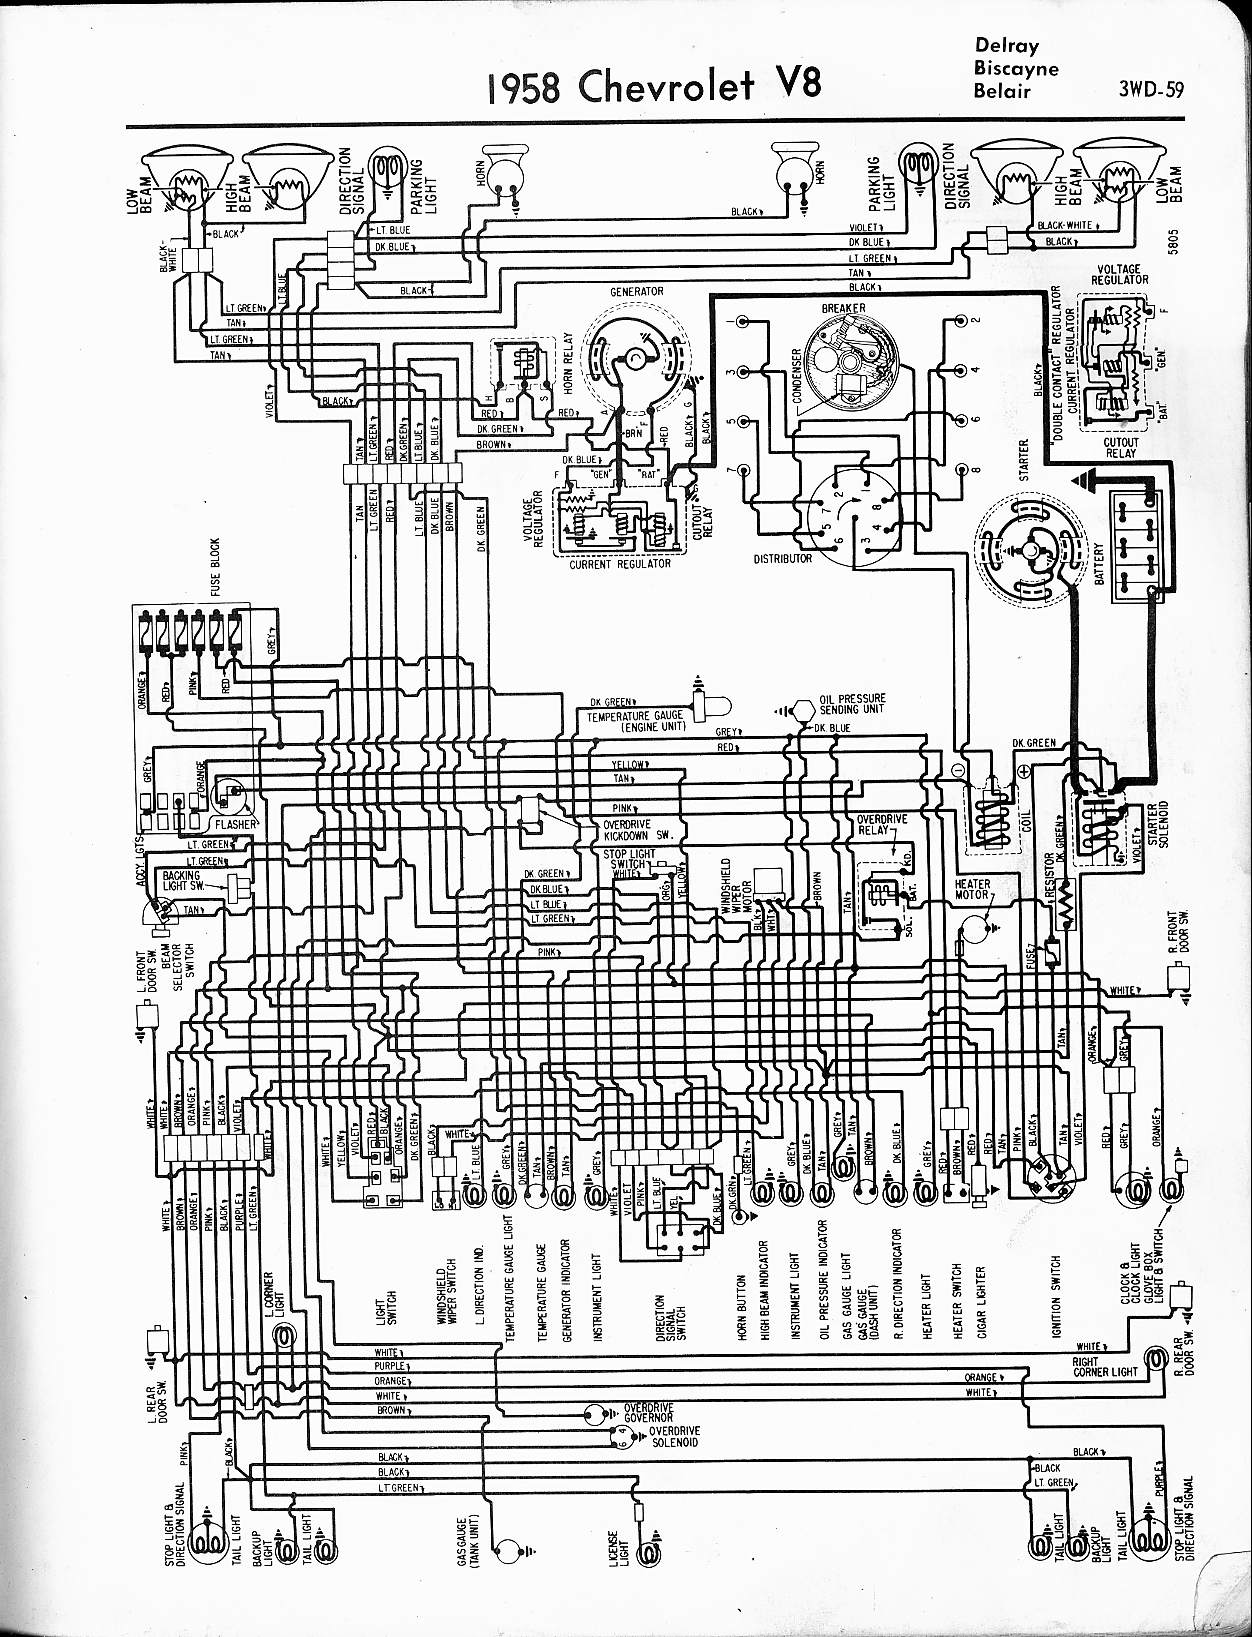 MWireChev58_3WD 059 57 65 chevy wiring diagrams GM Factory Wiring Diagram at reclaimingppi.co